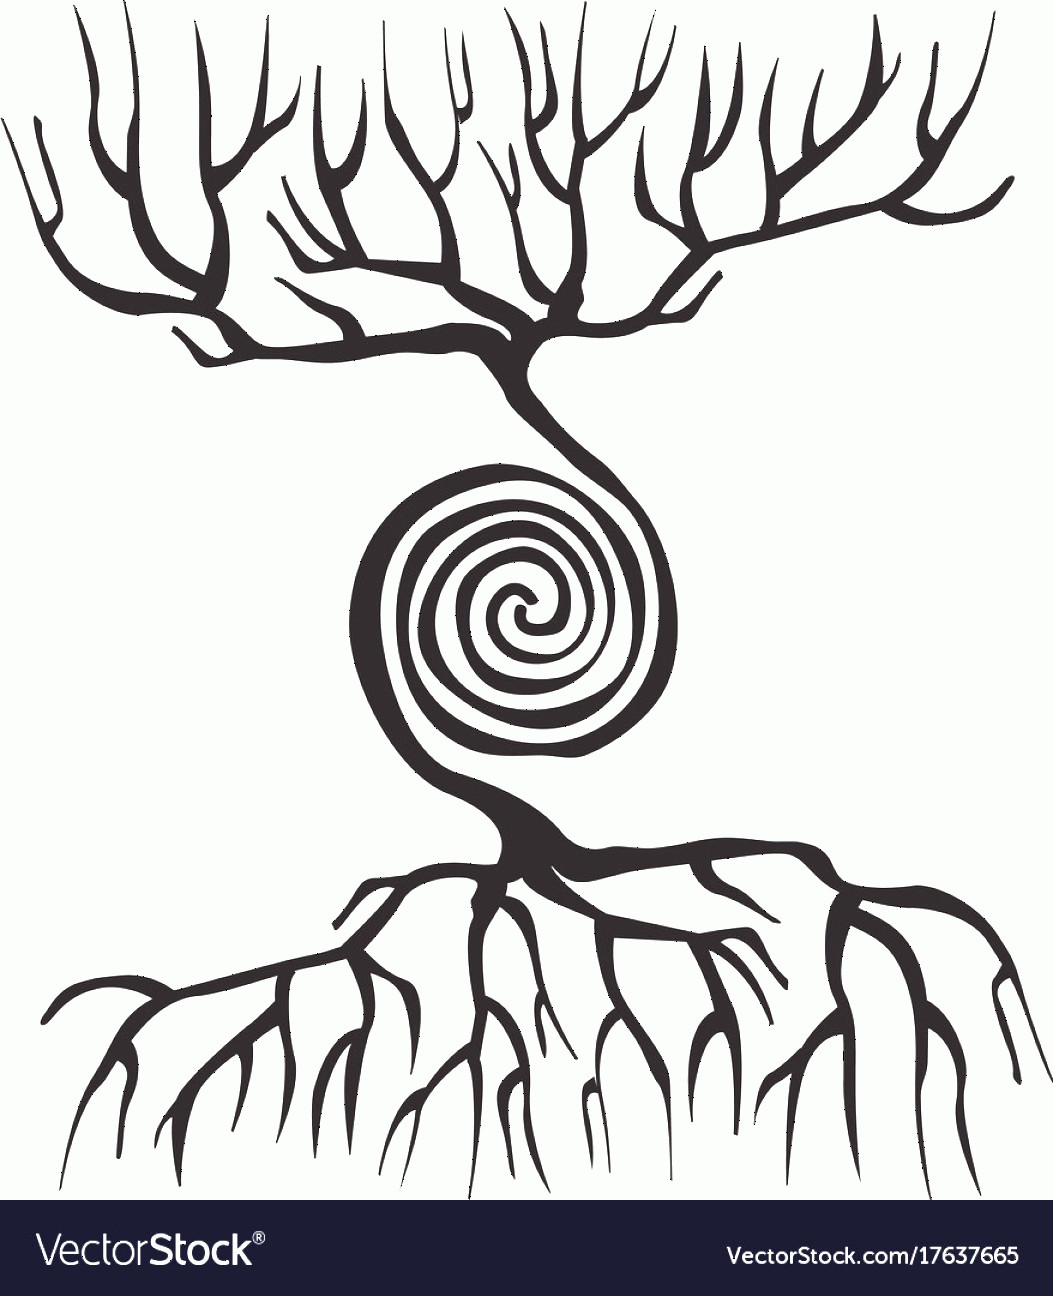 Vector Tree With Roots Drawing: Tree Symbol With Roots And A Spiral Vector